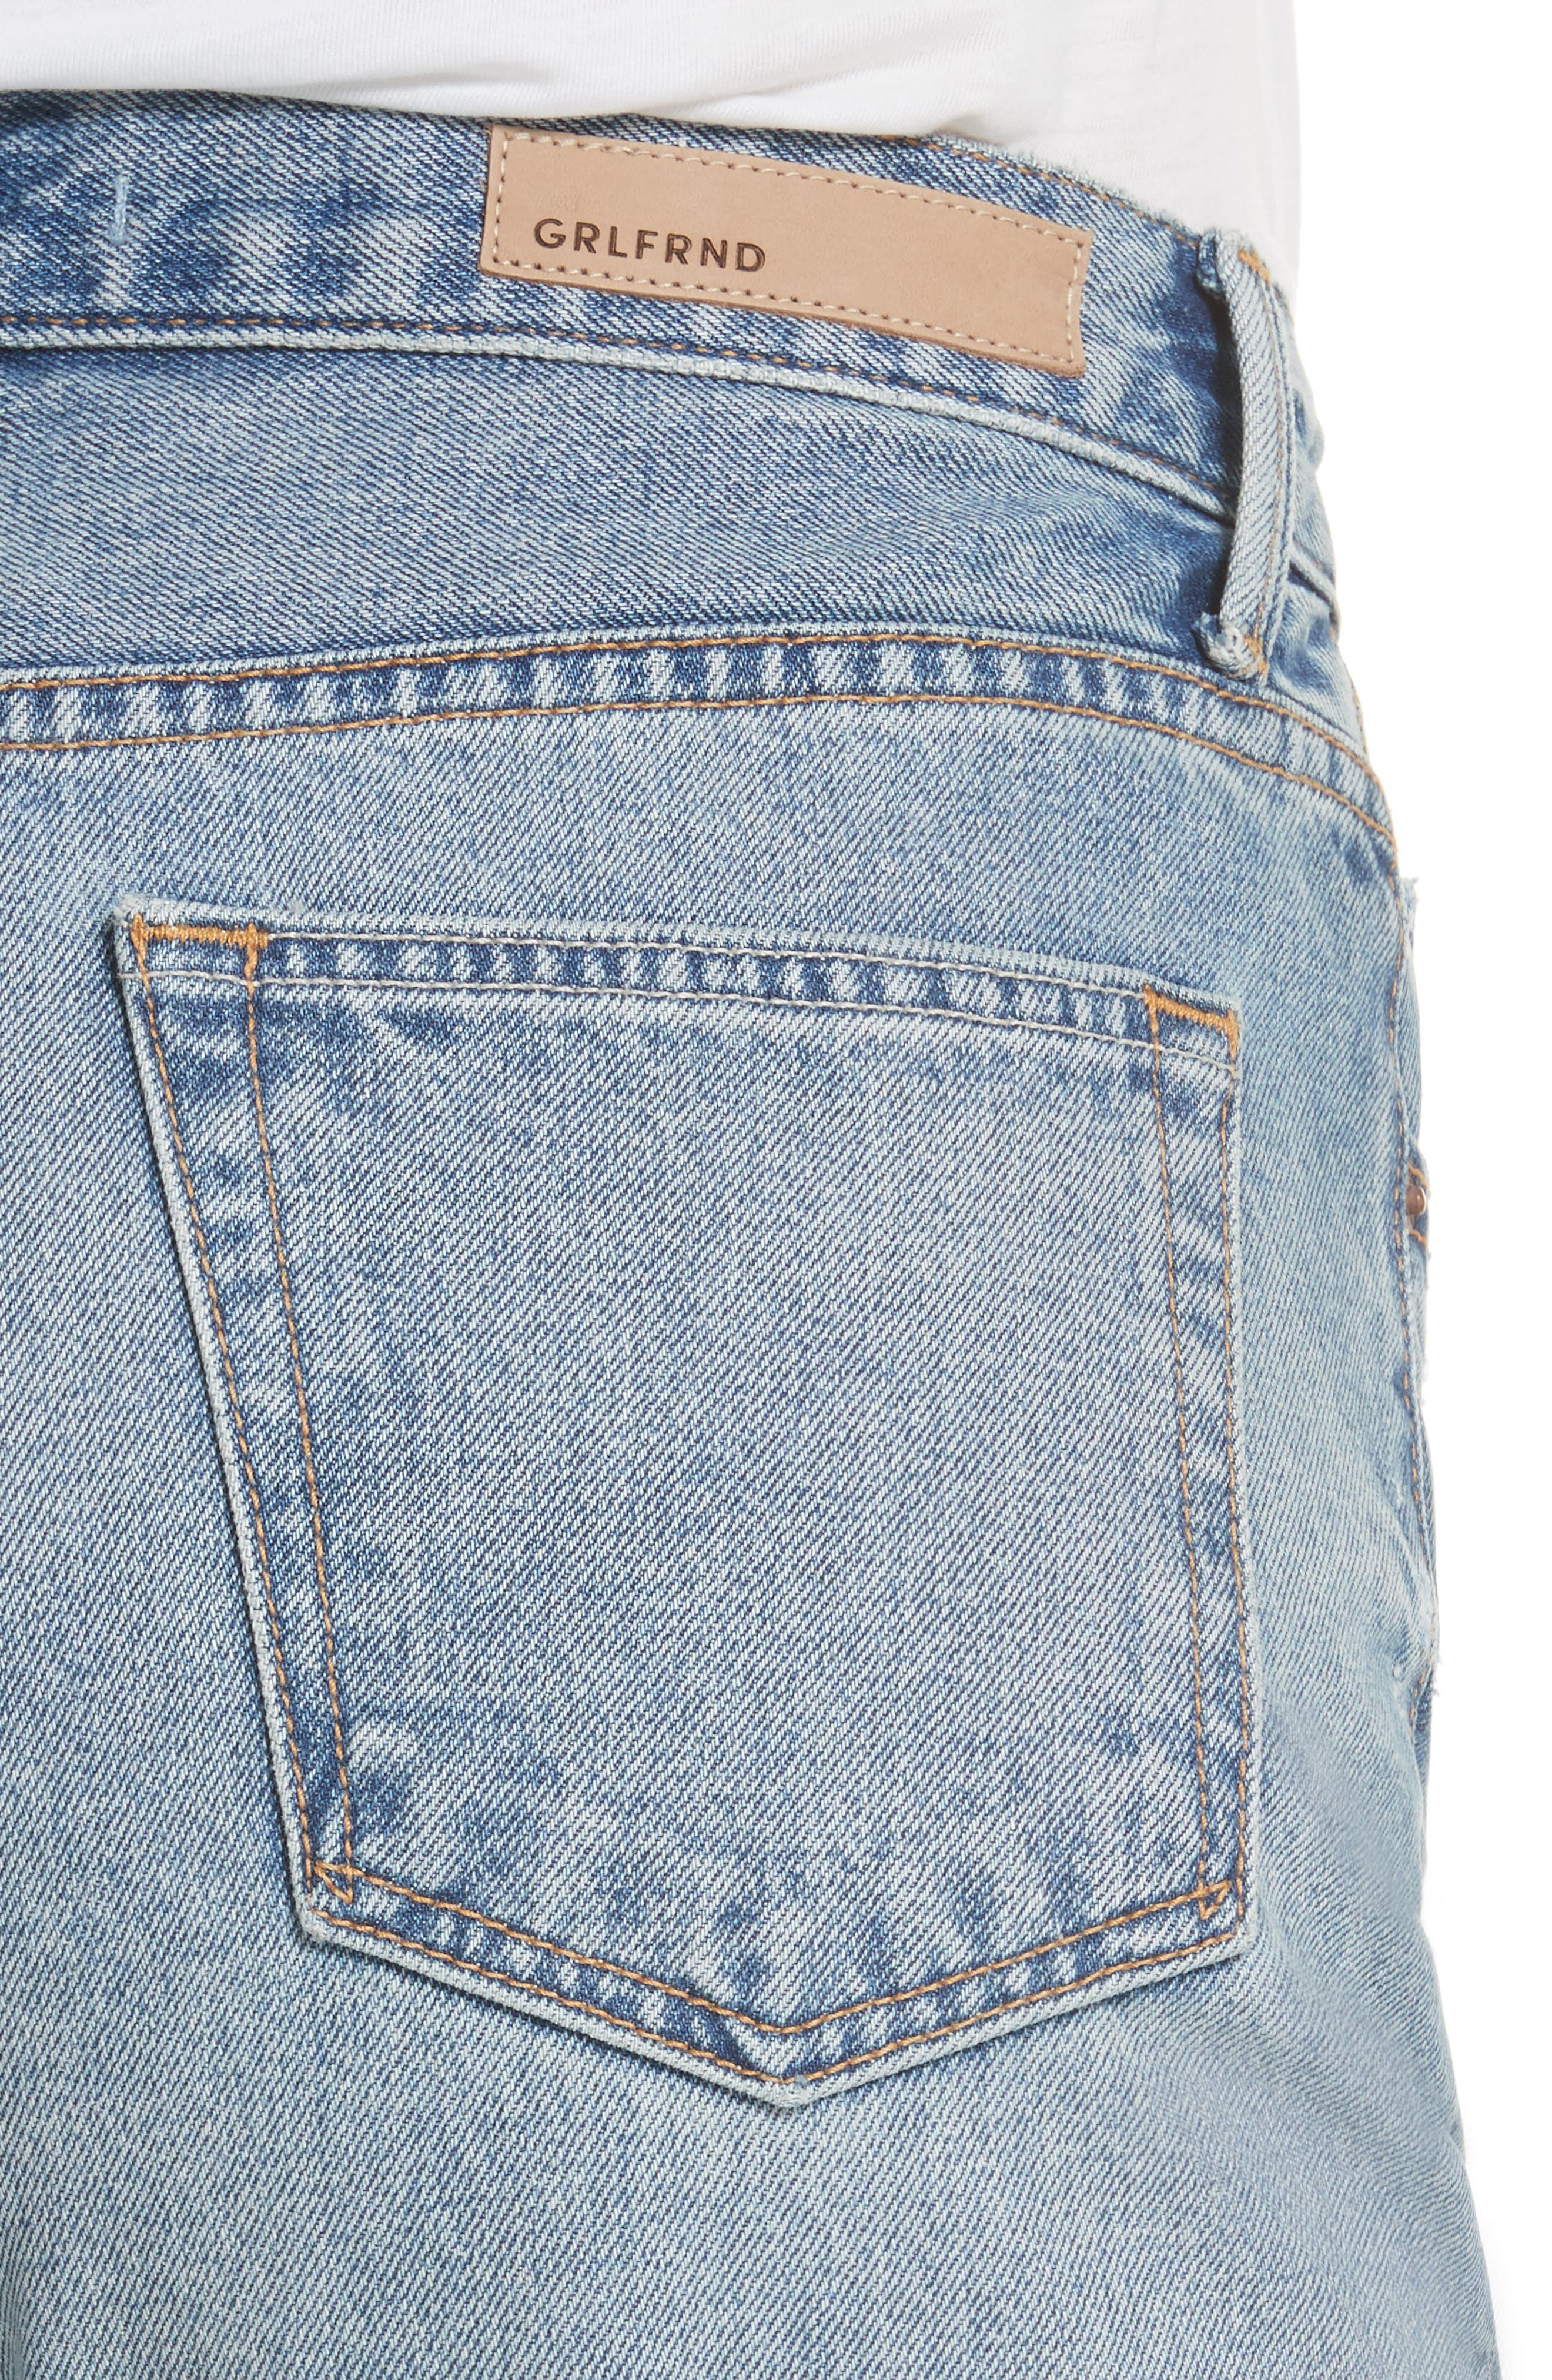 Helena Ripped Rigid High Waist Straight Jeans,                             Alternate thumbnail 4, color,                             Its Cold Out